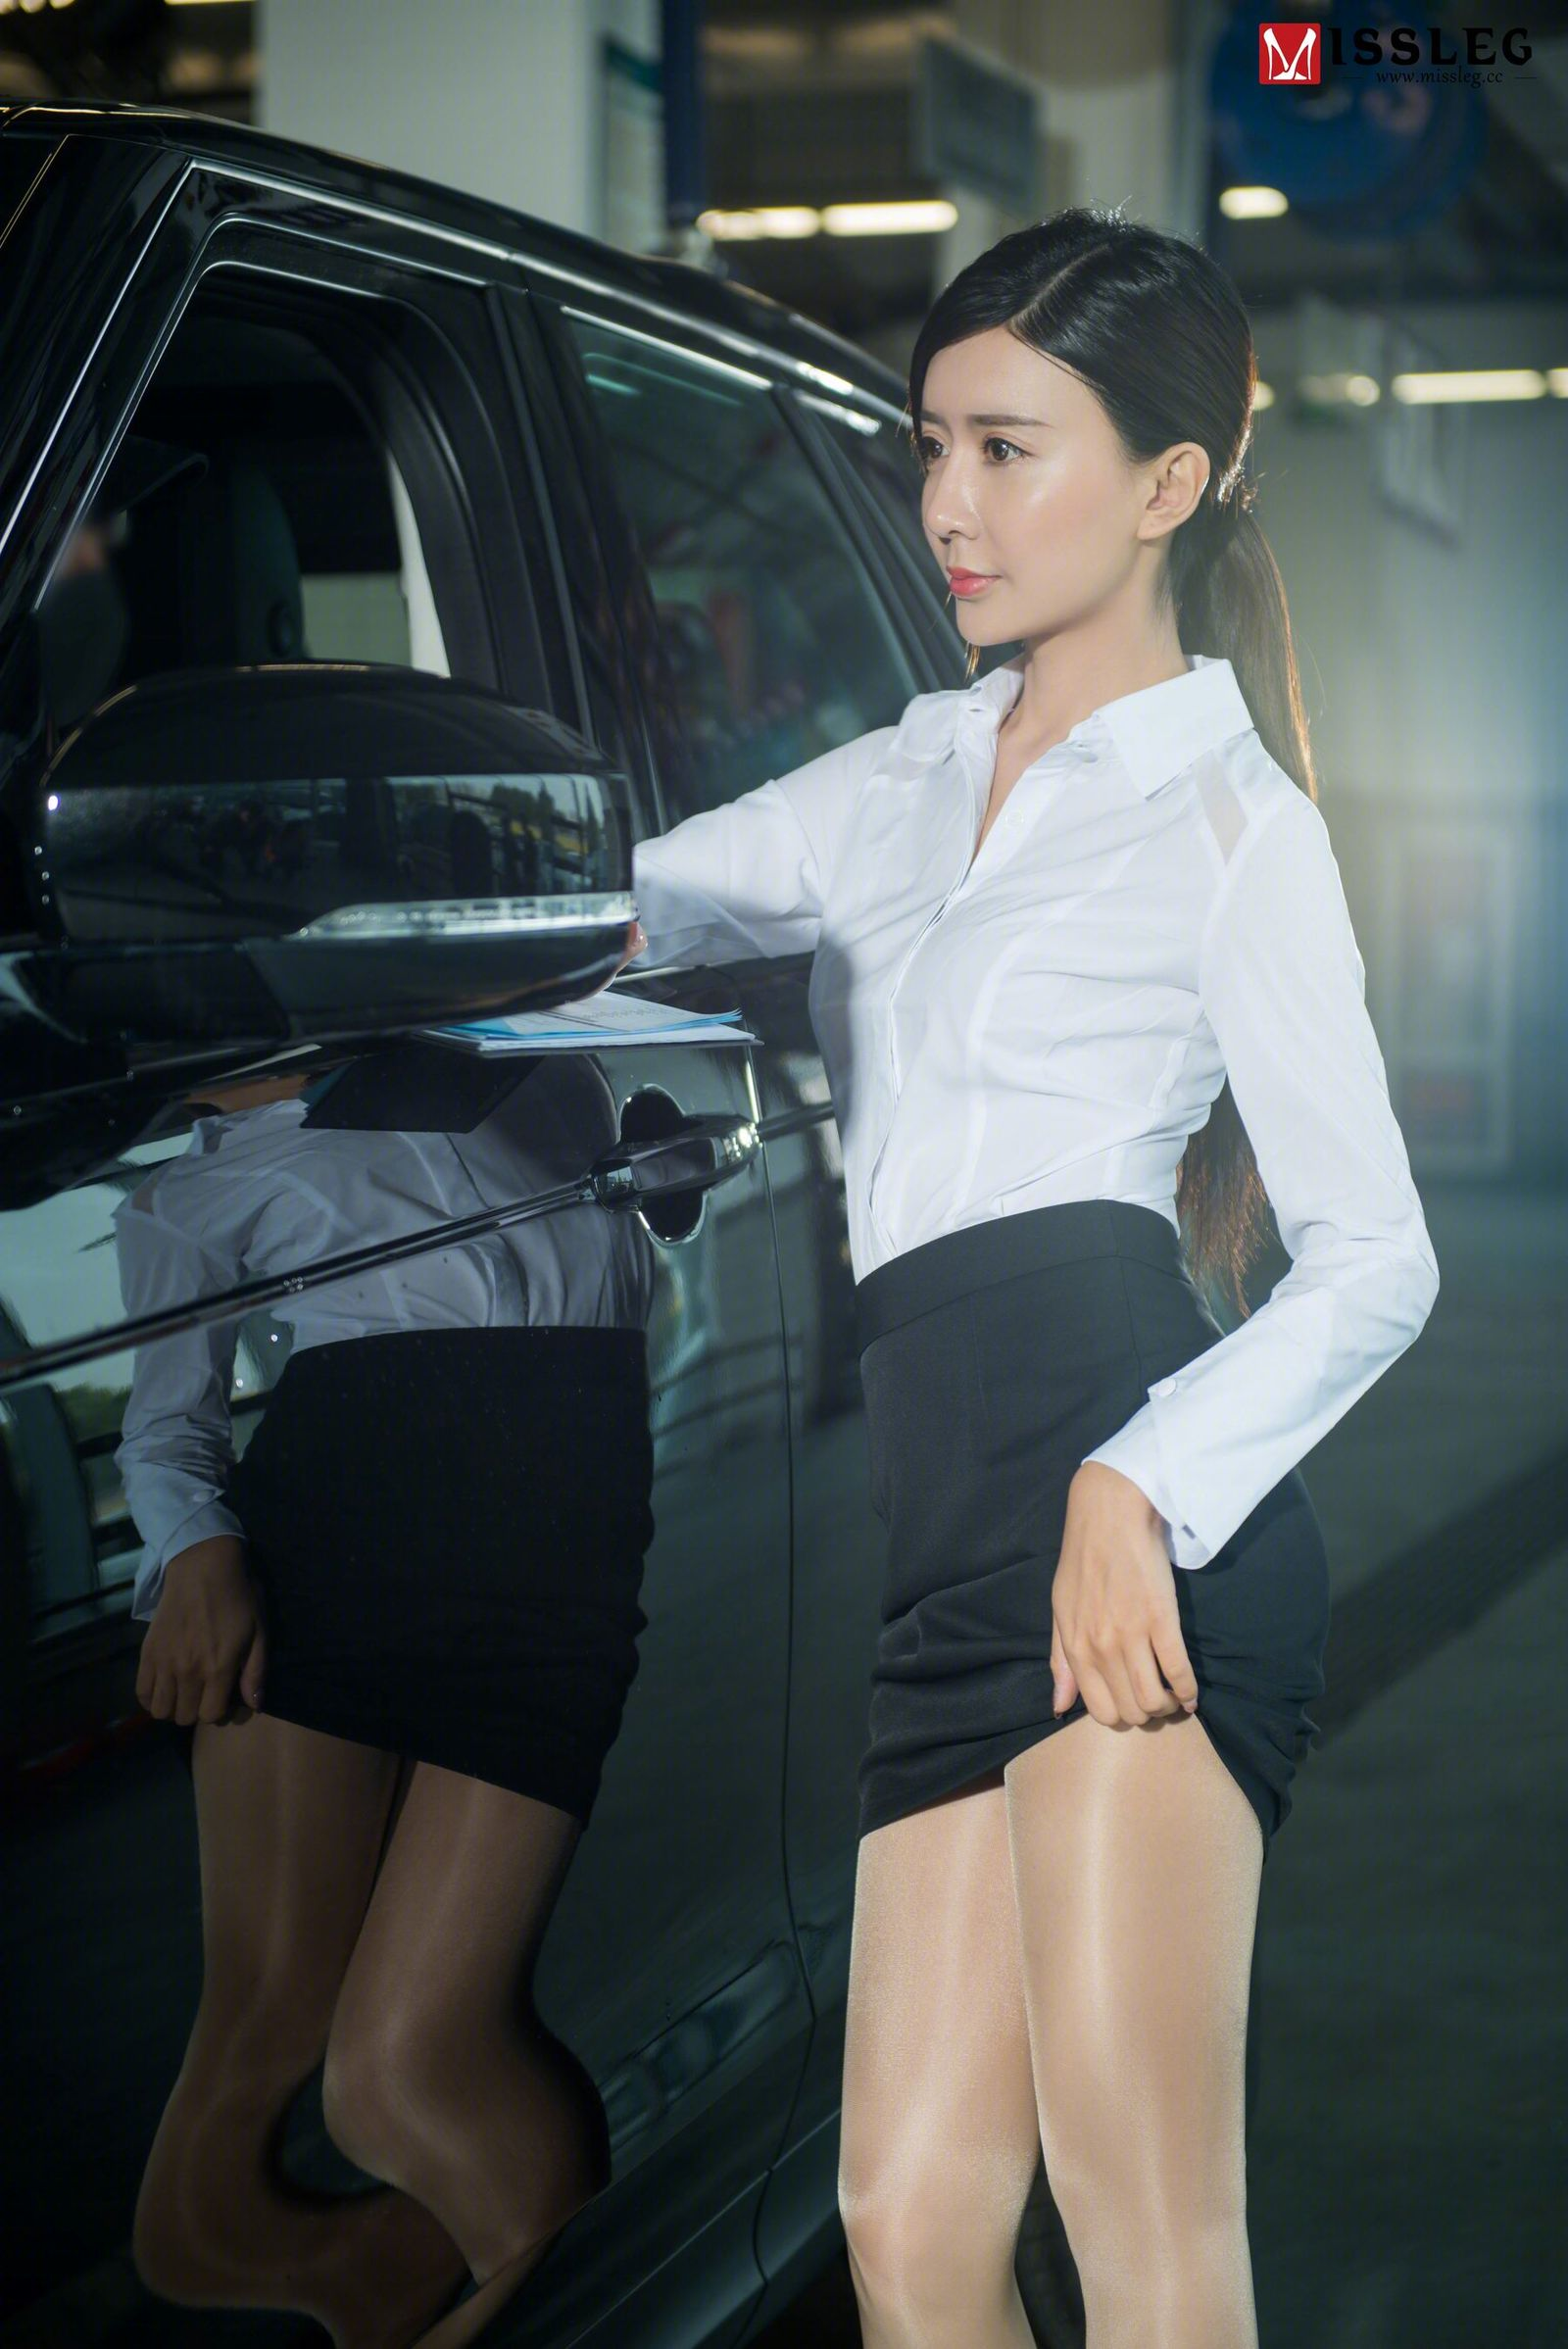 Sexy Car Saleswoman Wearing Pantyhose The Intimate Touch